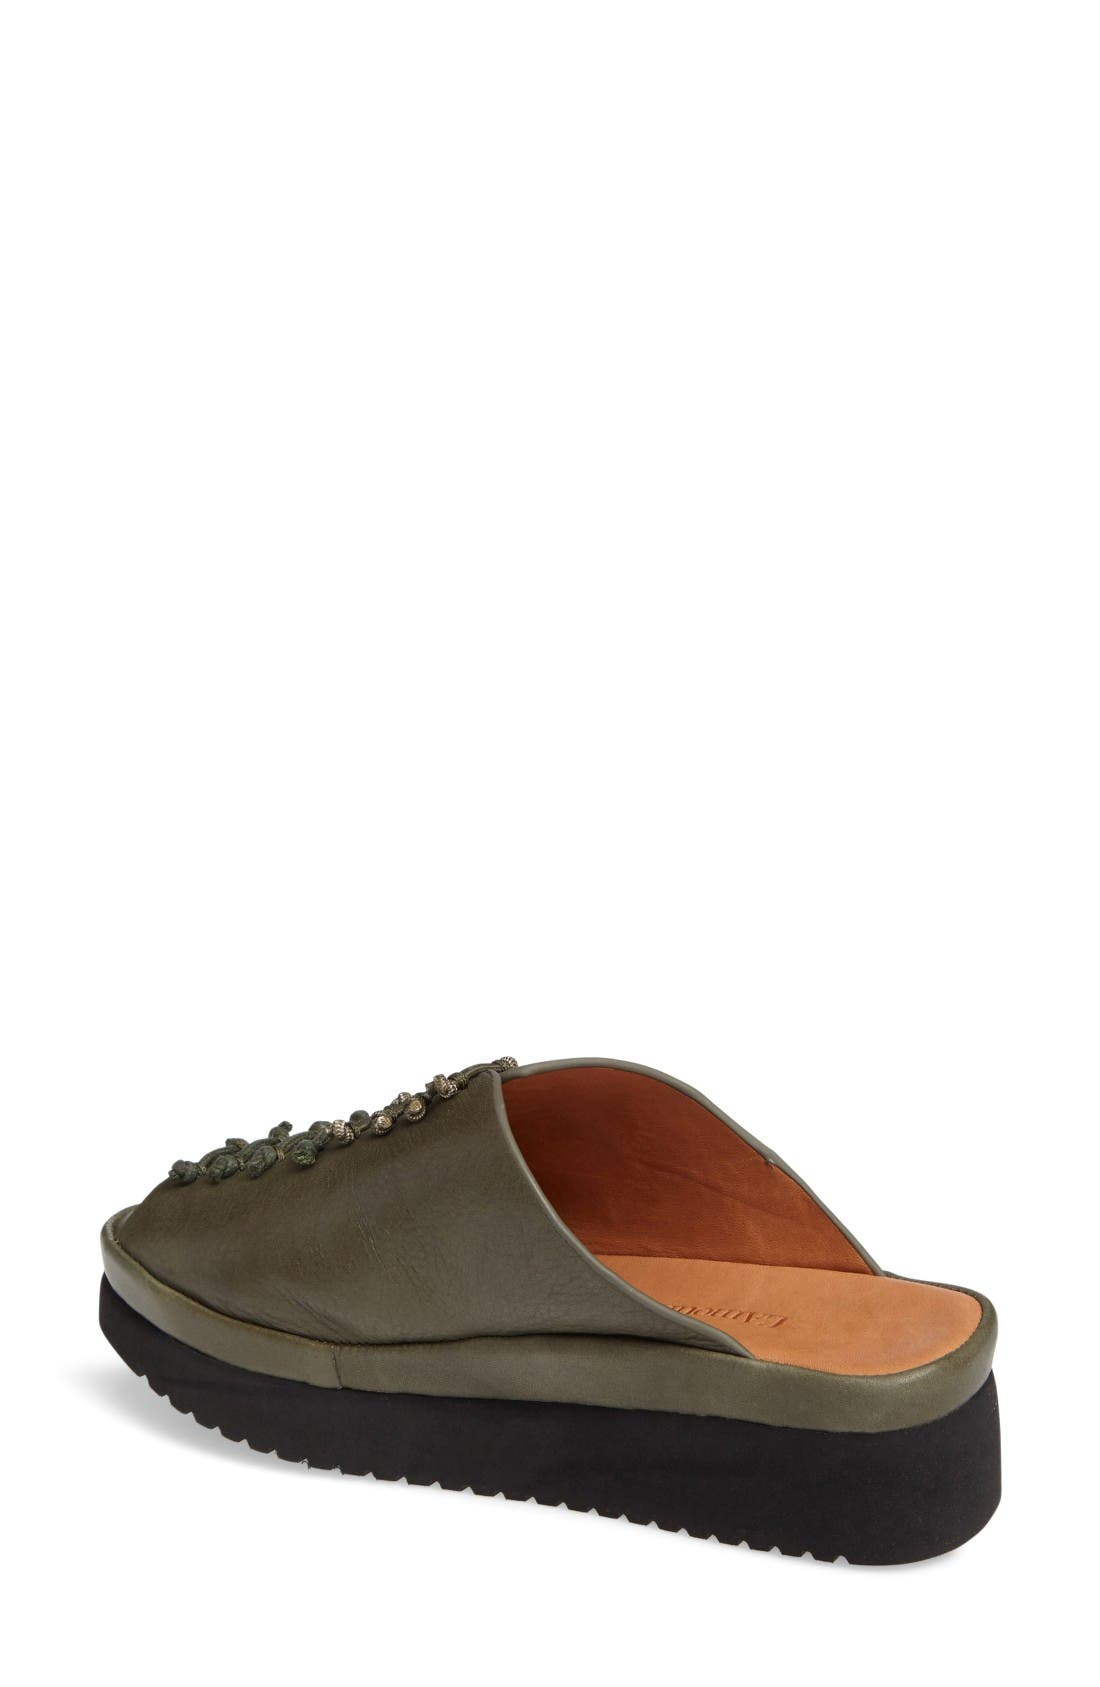 Arienne Wedge Platform Sandal,                             Alternate thumbnail 2, color,                             Olive Leather